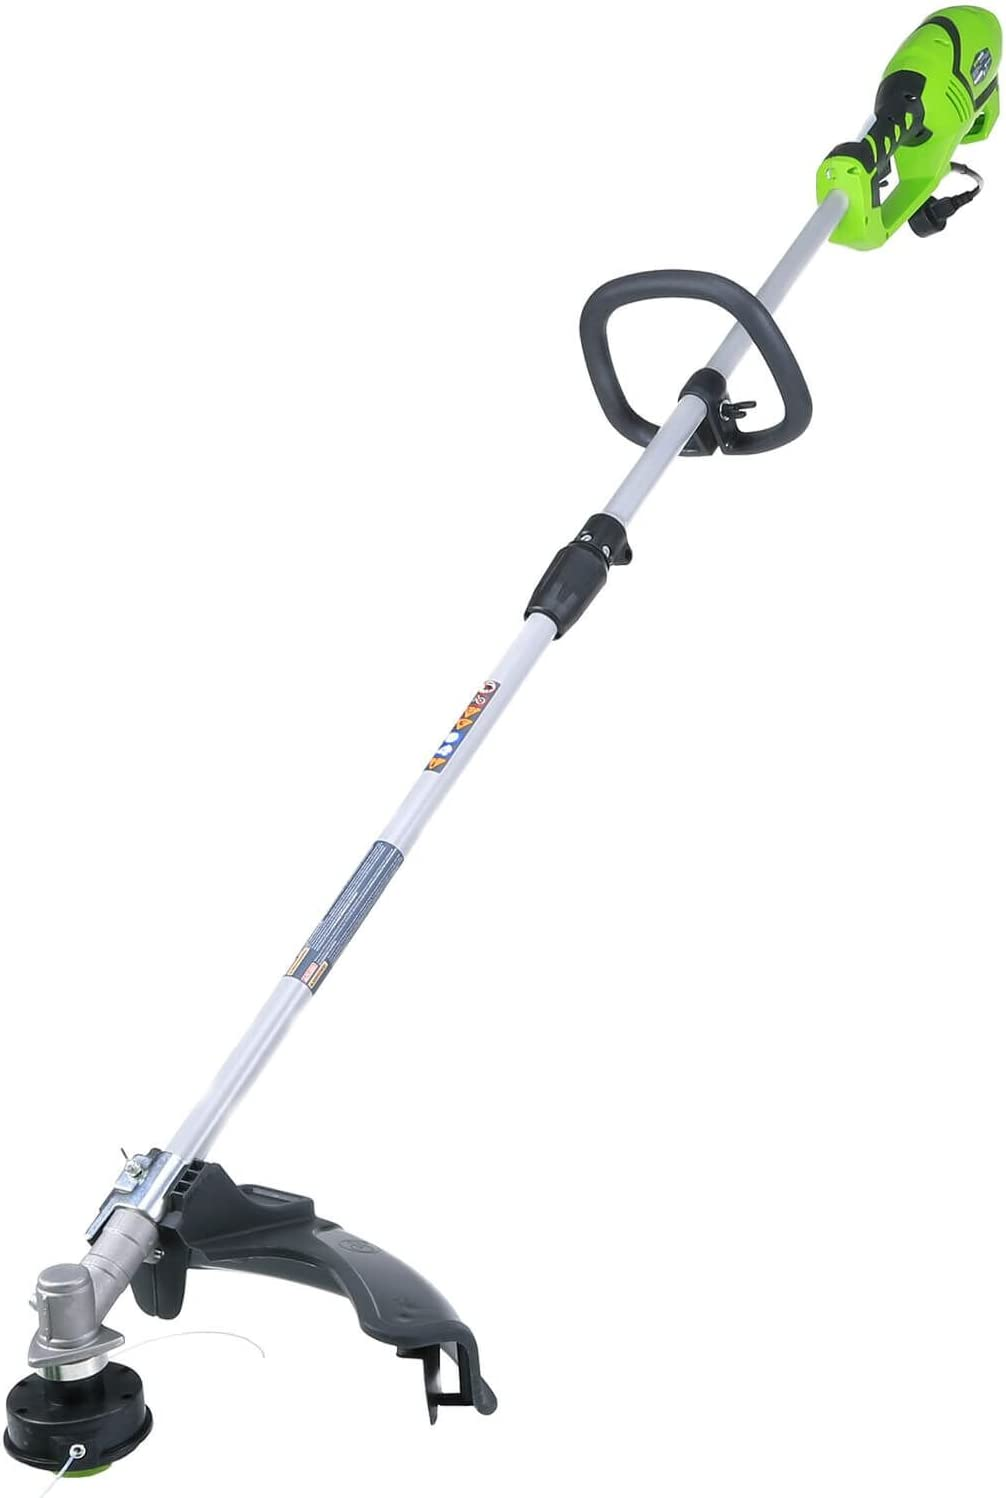 Greenworks 21142 10 Amp Corded String Trimmer - best string trimmers for the money